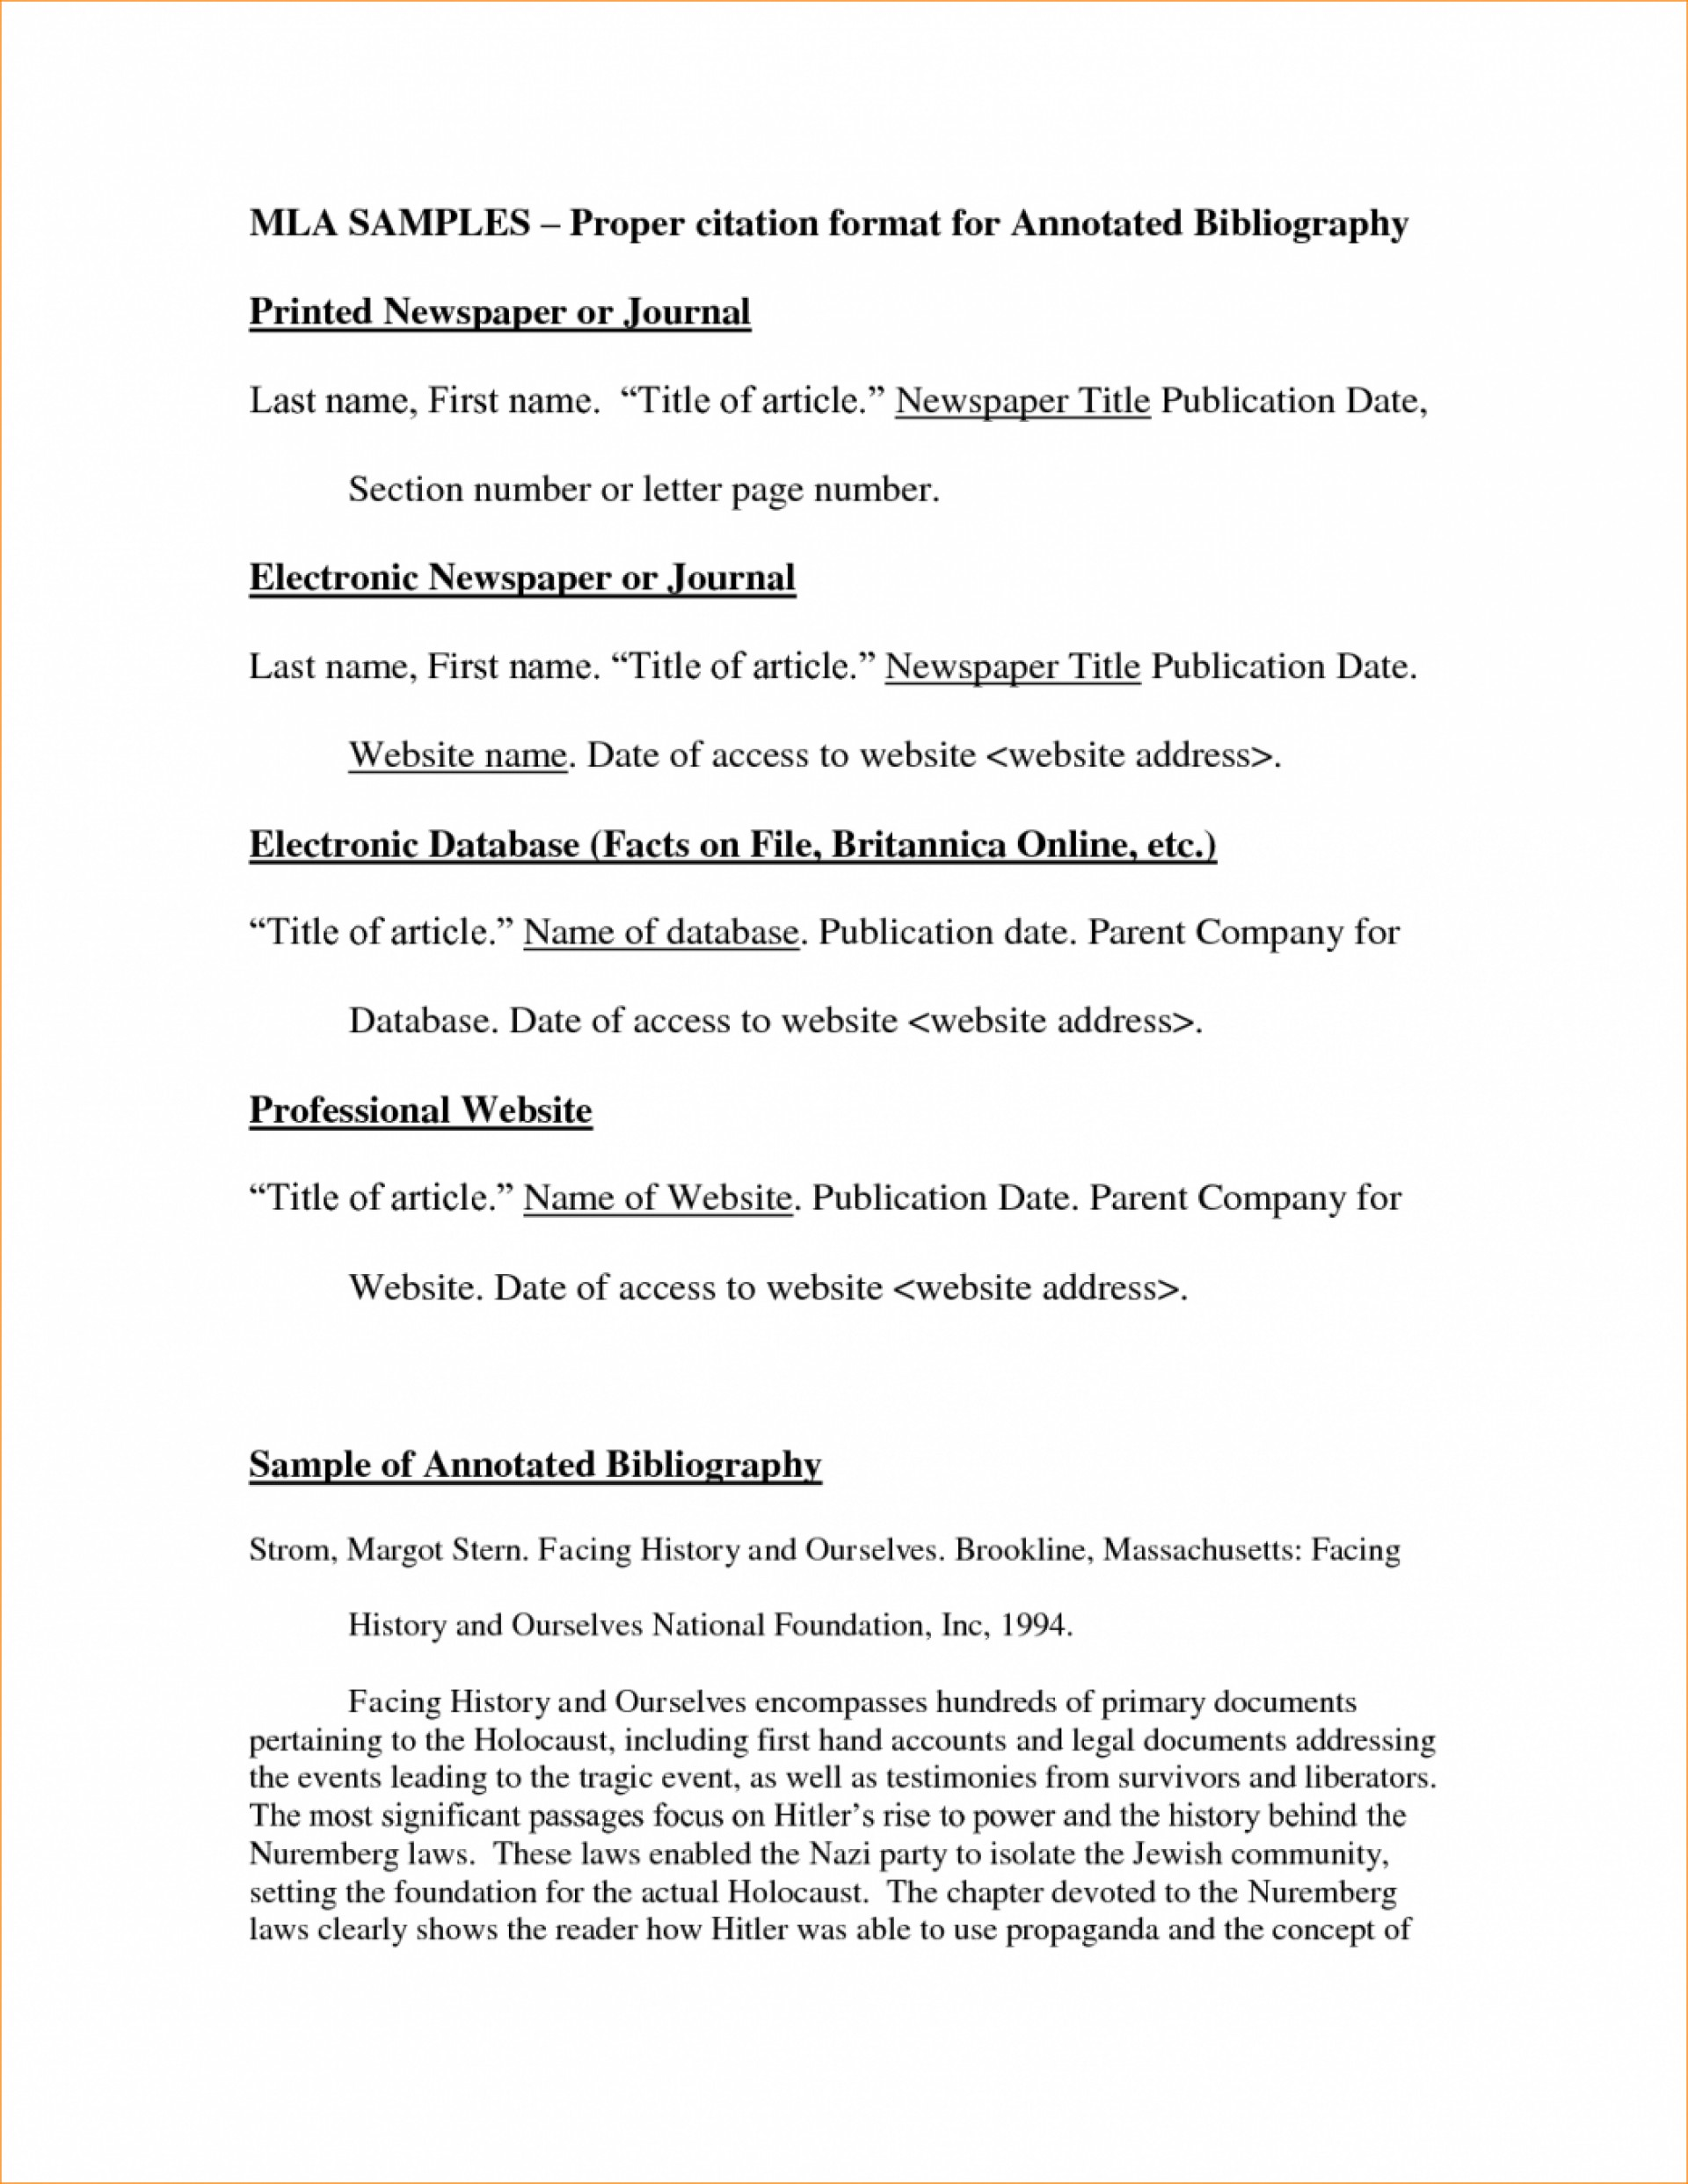 017 Essay Example Mla Format In Narrative Annotated Bibliography Template With Cover Page Title Works Cited Argumentative Persuasive Pdf 1048x1356 Beautiful Sample 2017 Paper 1920